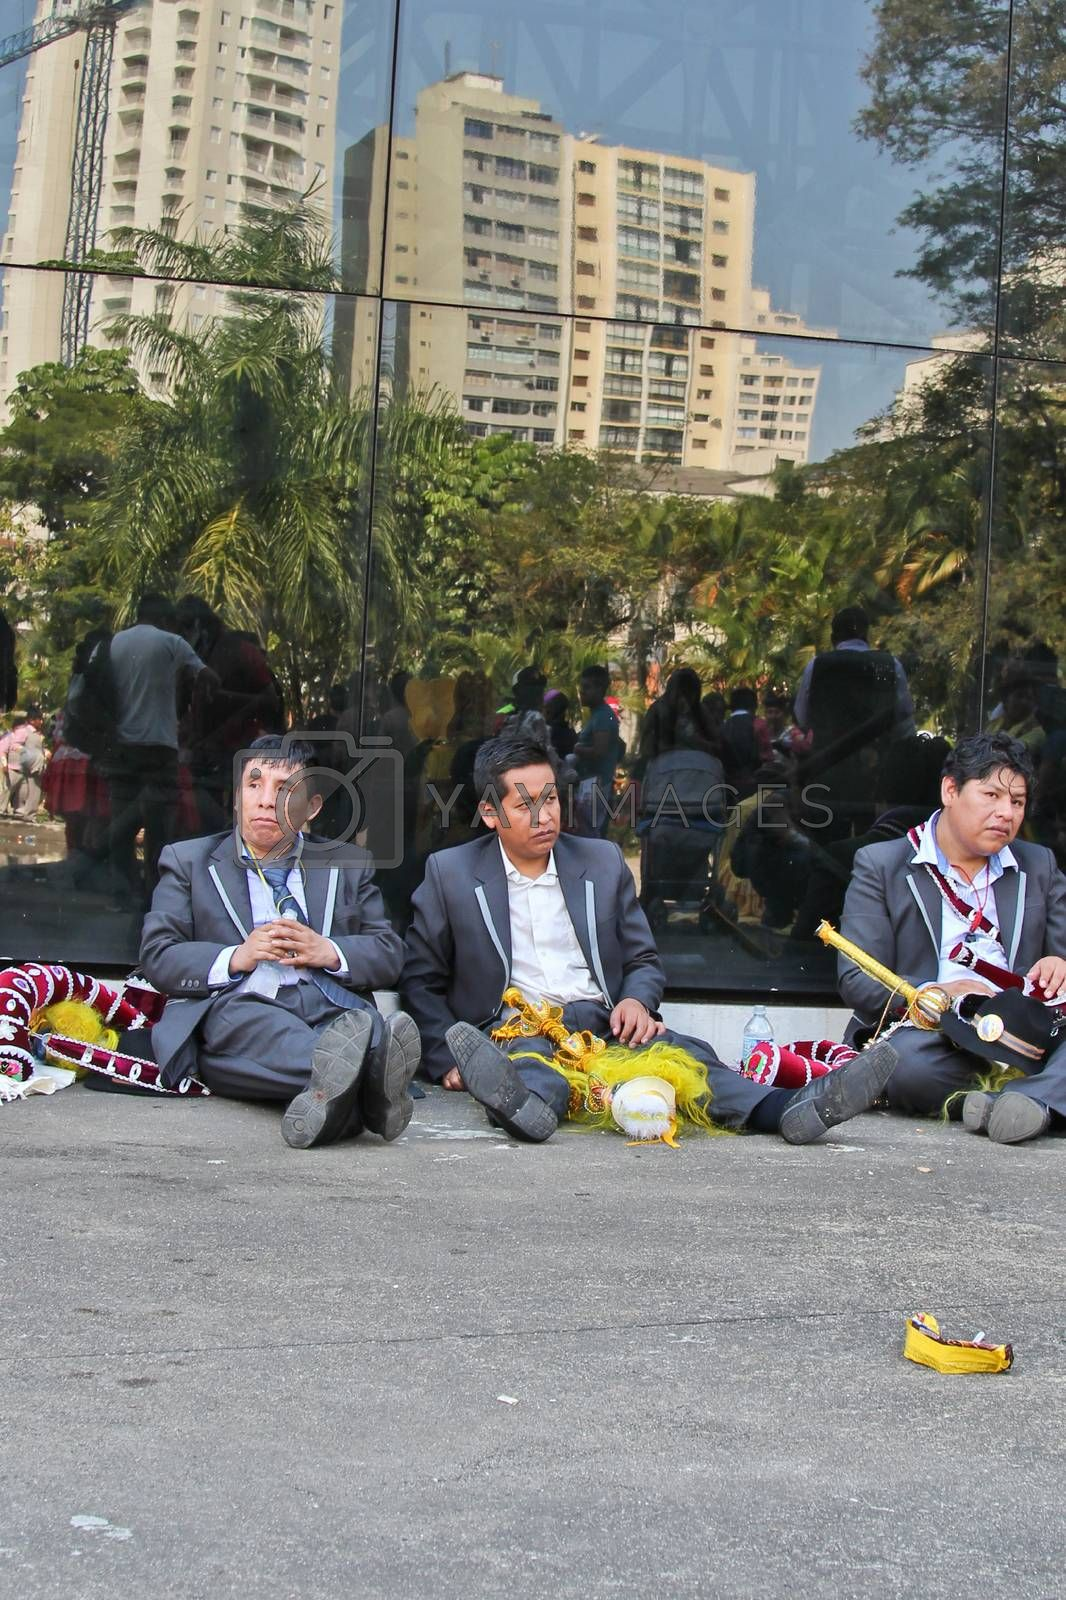 SAO PAULO, BRAZIL August 9 2015: An unidentified group of men resting after the Morenada parade in Bolivian Independence Day celebration in Sao Paulo Brazil.